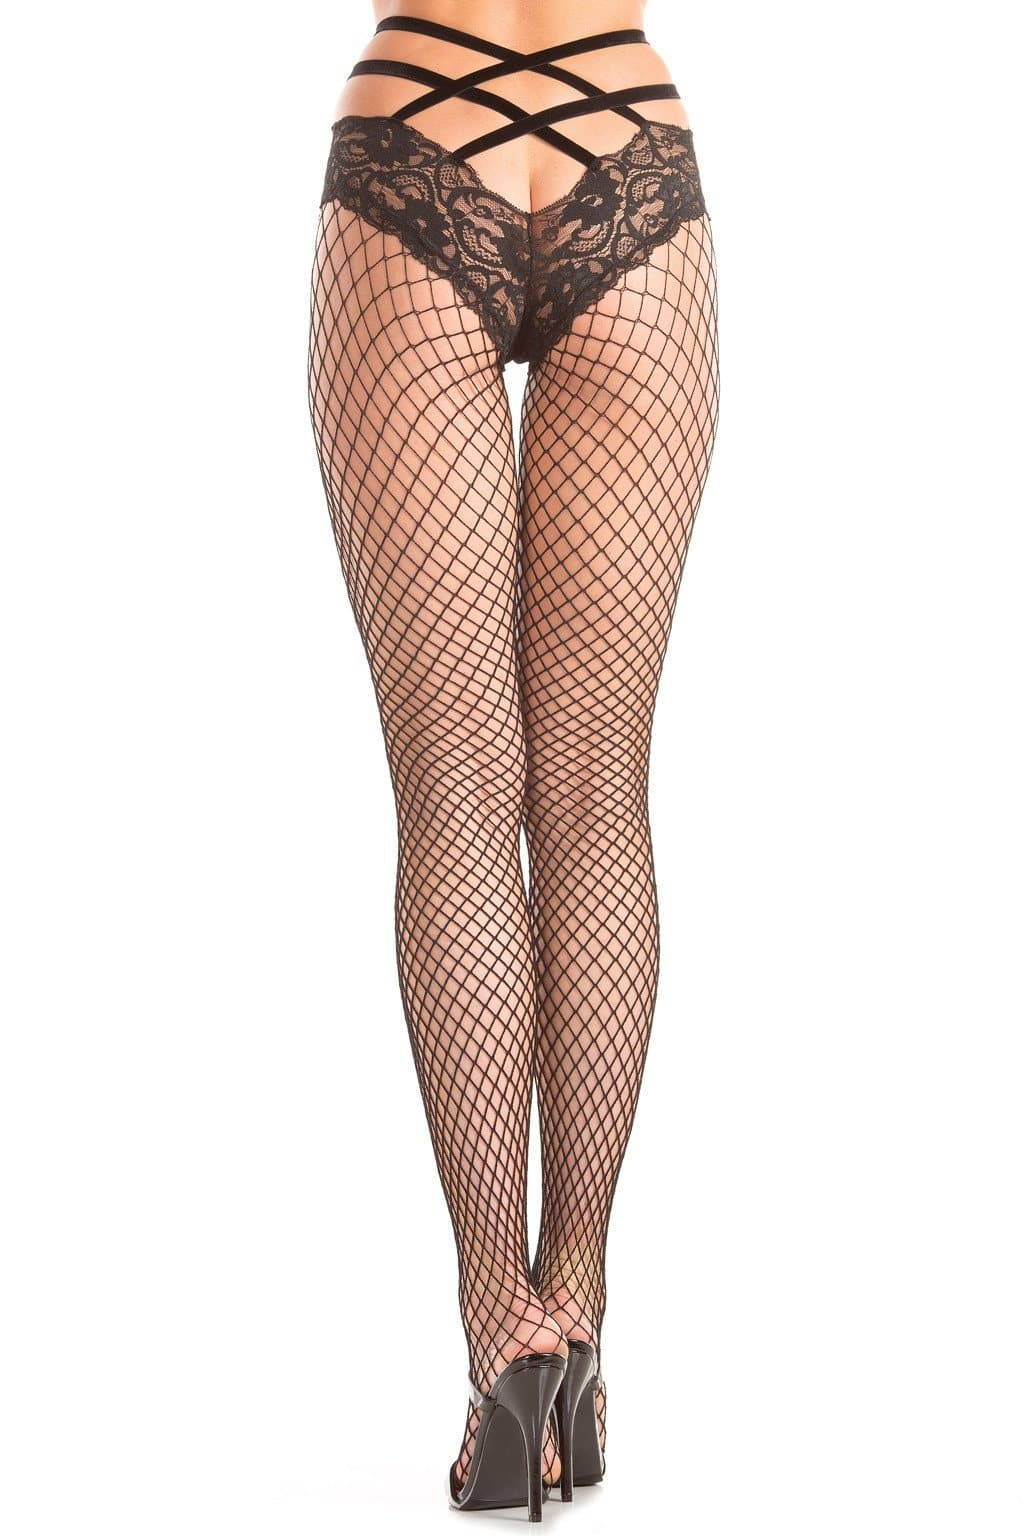 Be Wicked BW401 Fishnet Panythose with Elastic Strappy Waist and Lace Panty One Size